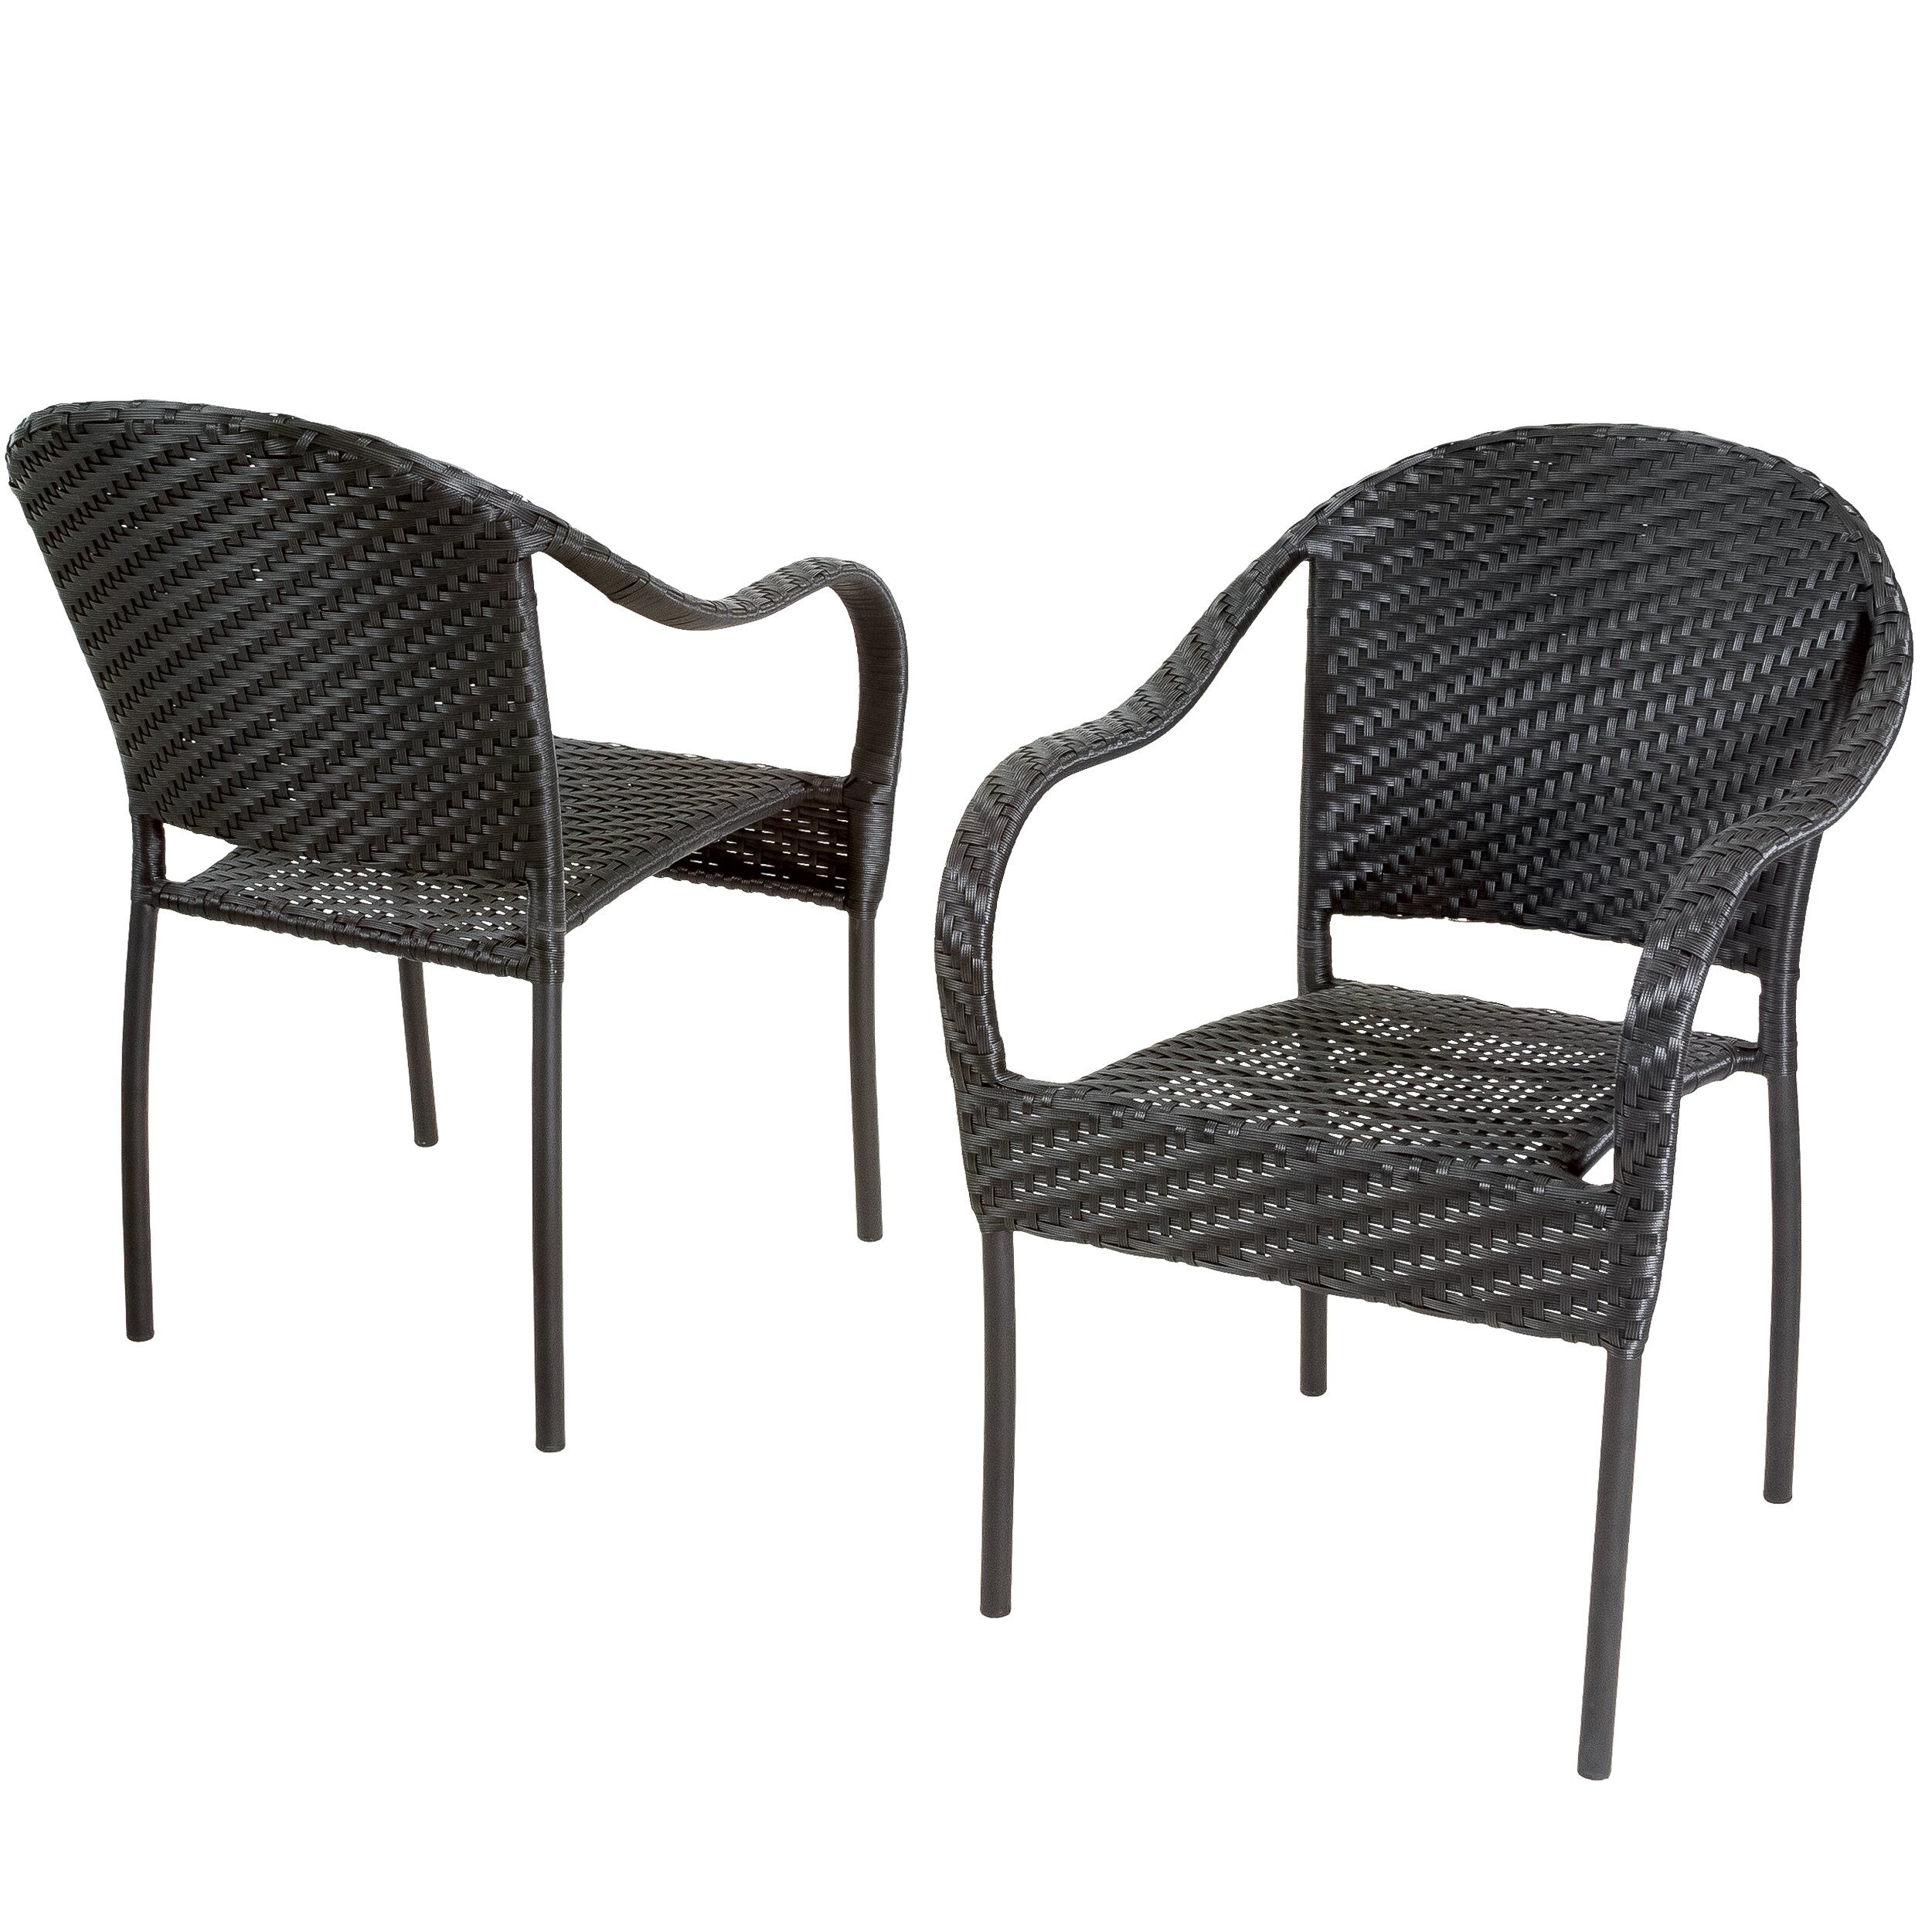 Black wicker outdoor chairs black rattan garden for Black porch furniture